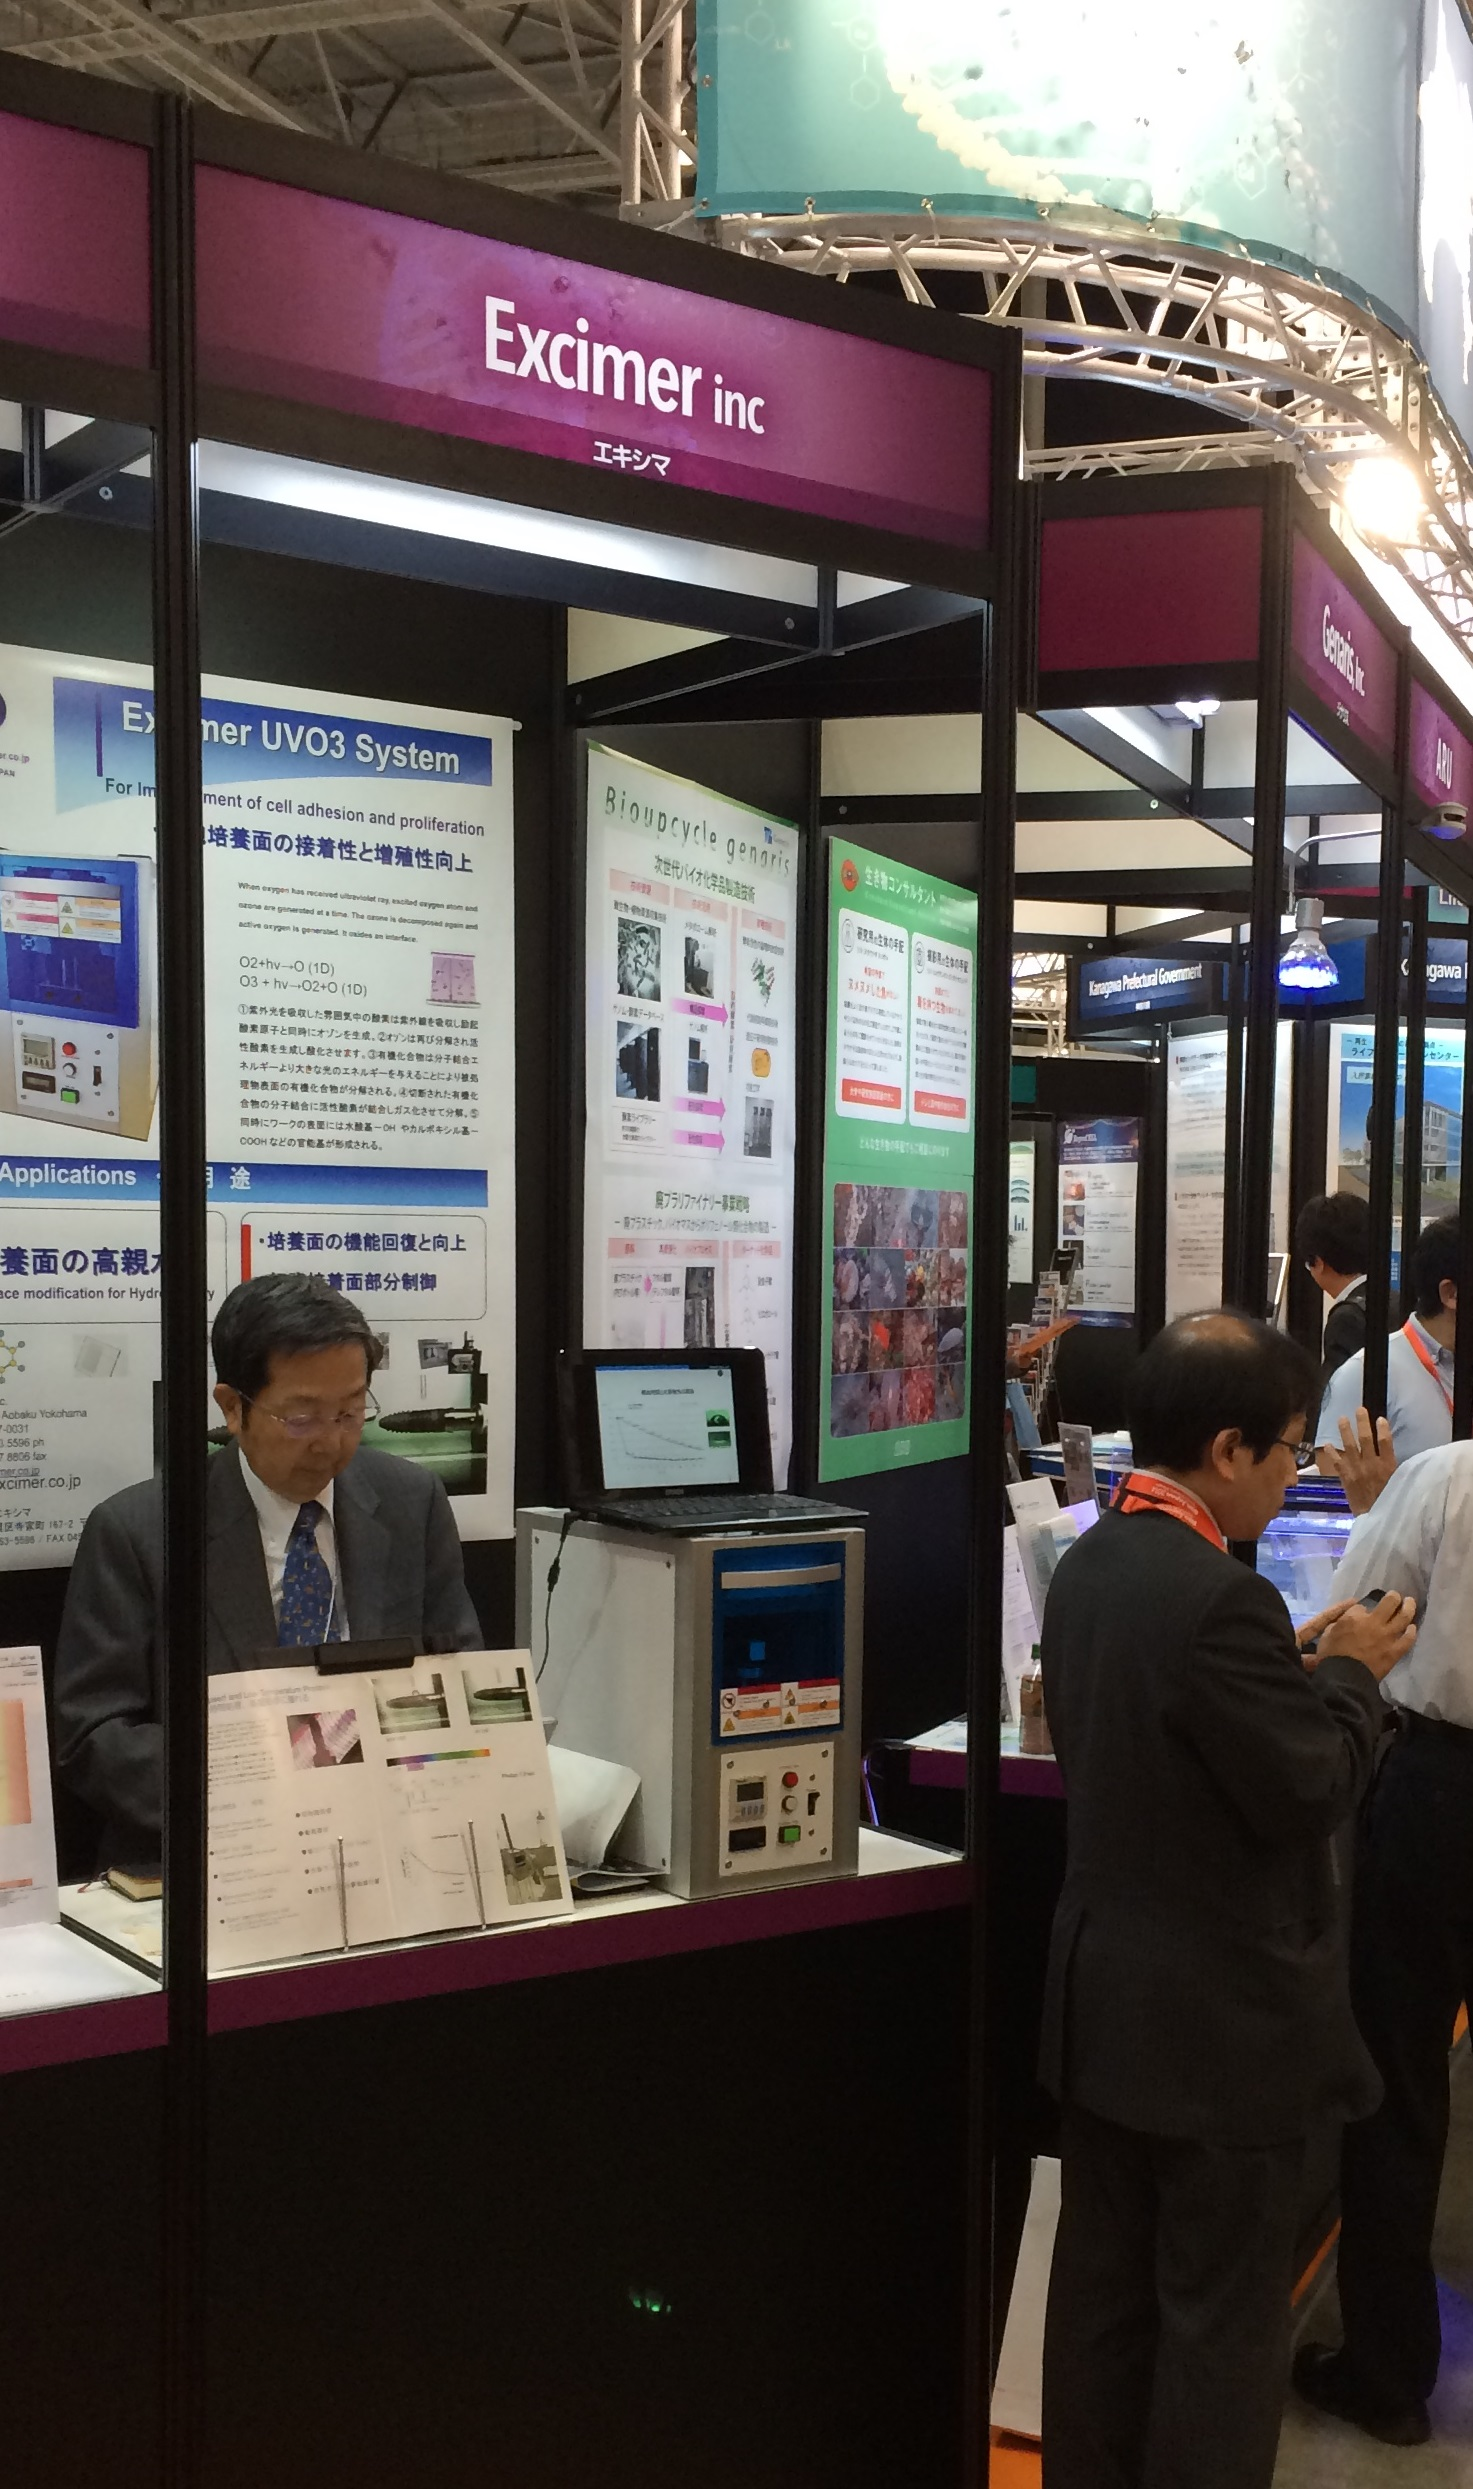 biojapan 2014 excimer inc